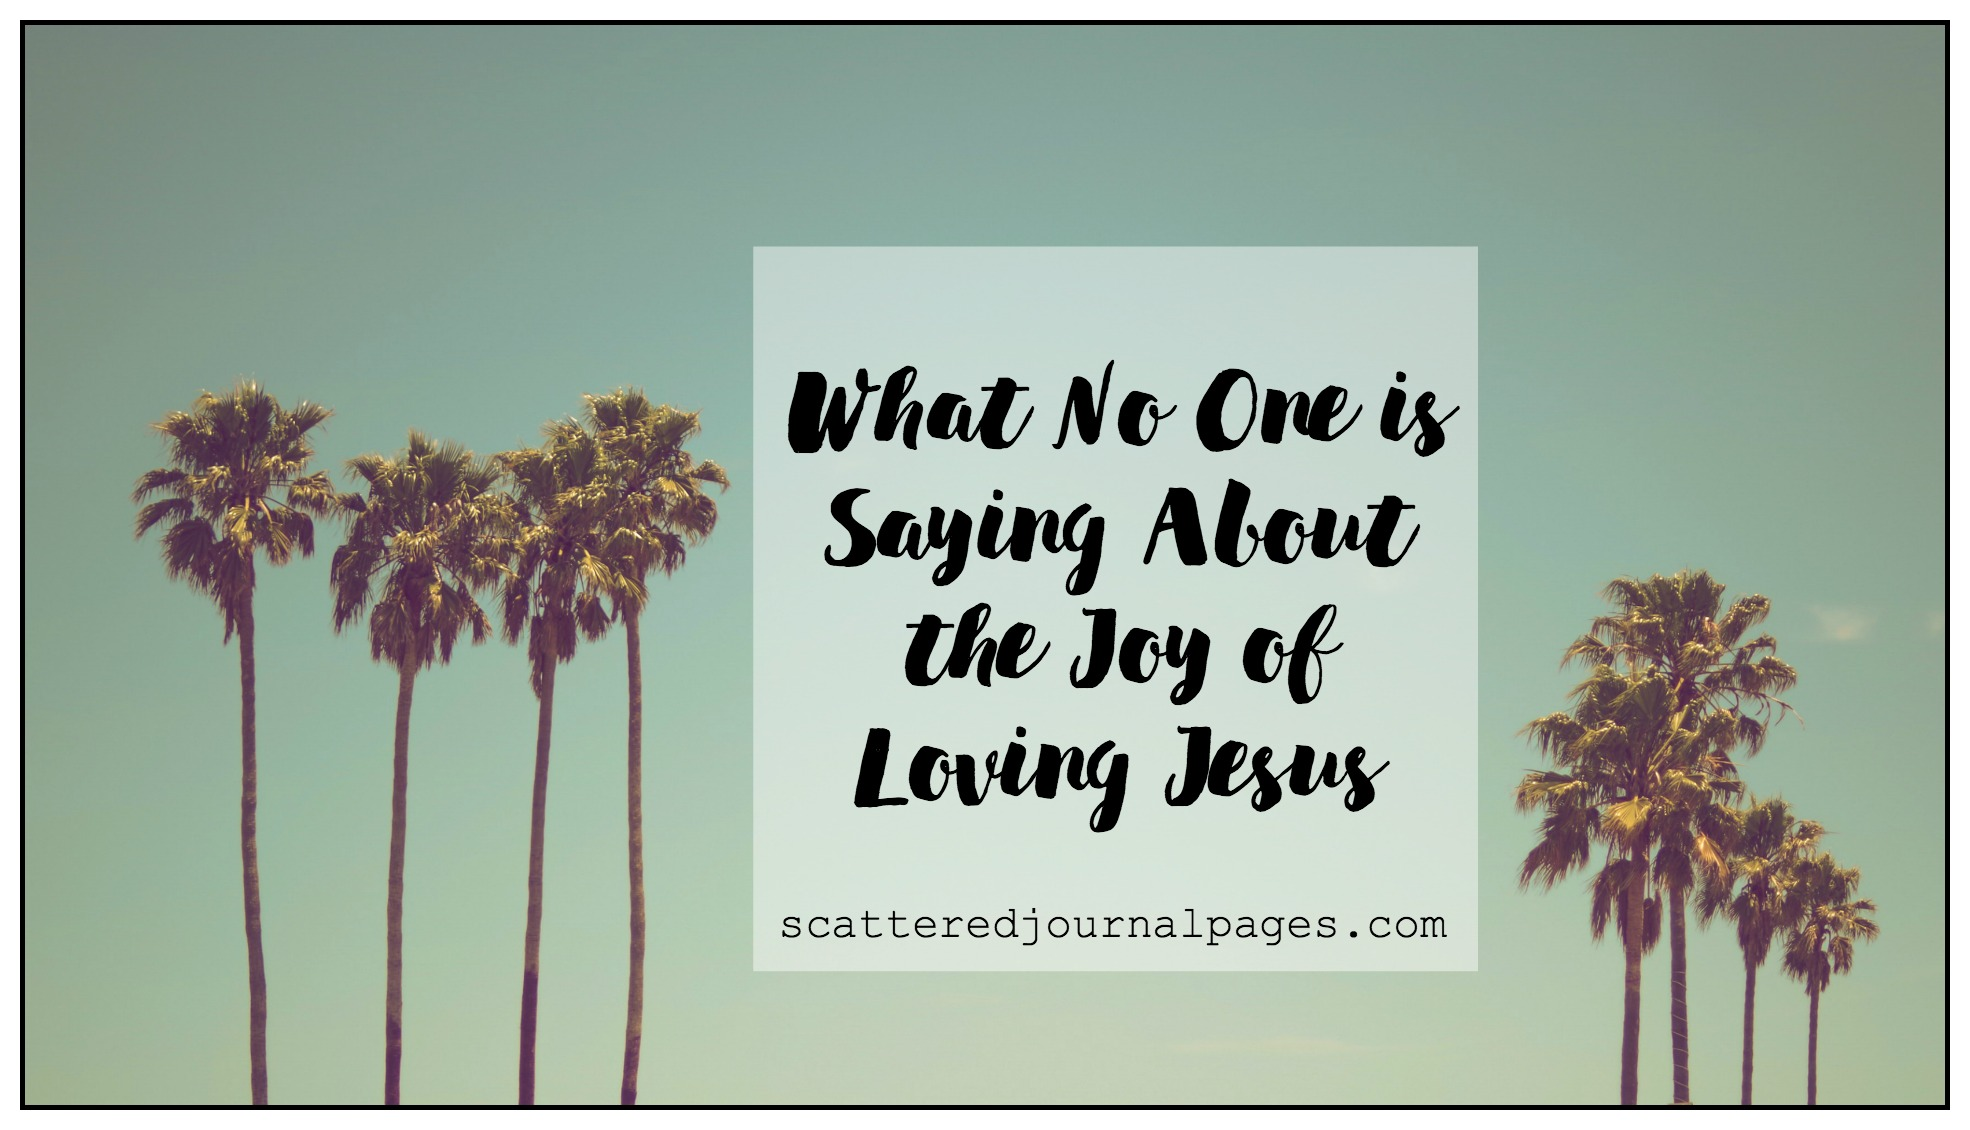 What No One is Saying About the Joy of Loving Jesus